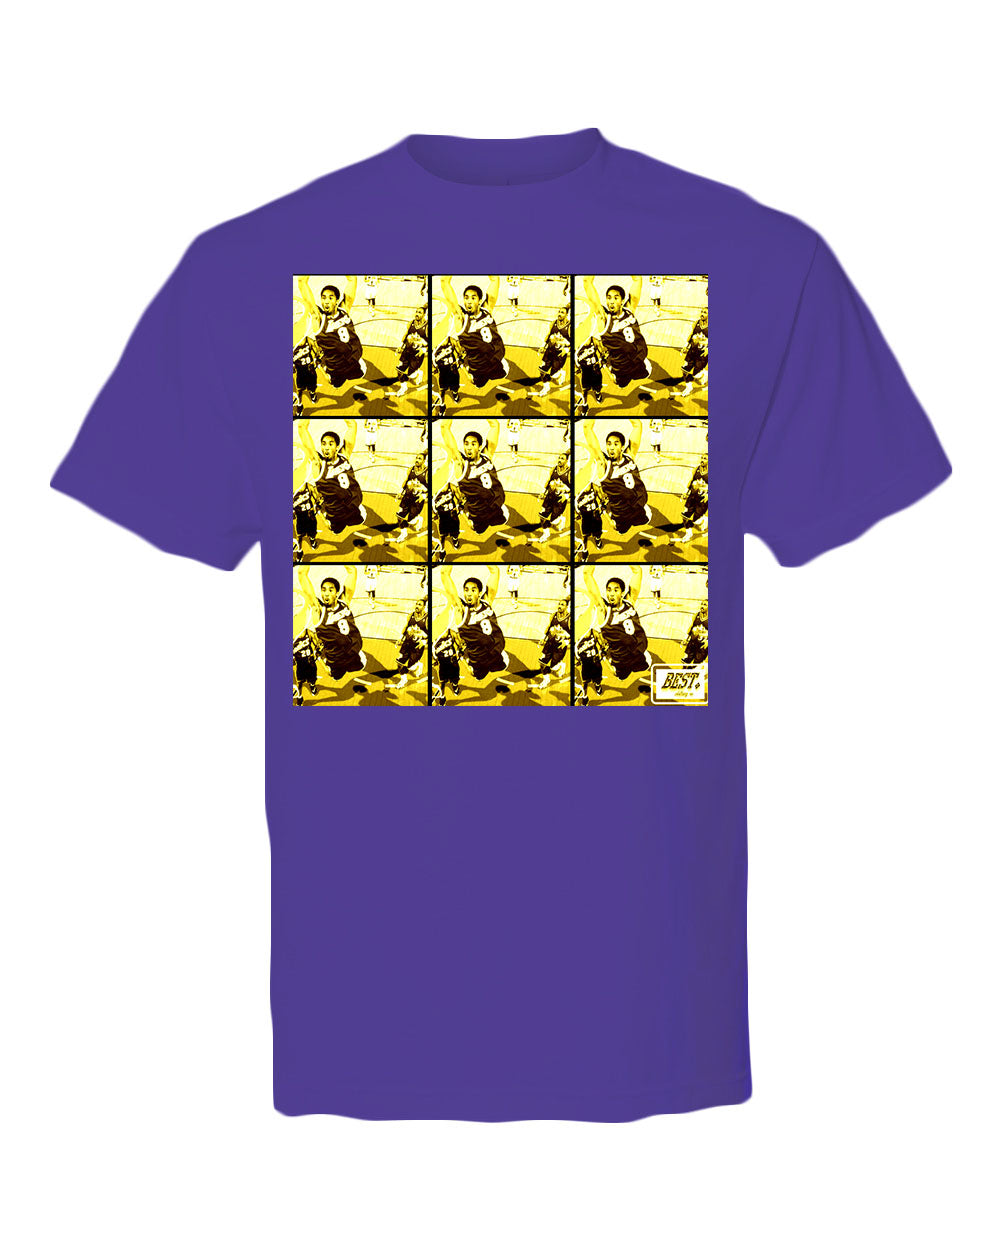 Kobe Bryant Dunking Purple/ Yellow T Shirt : Kobe Legacy Collection